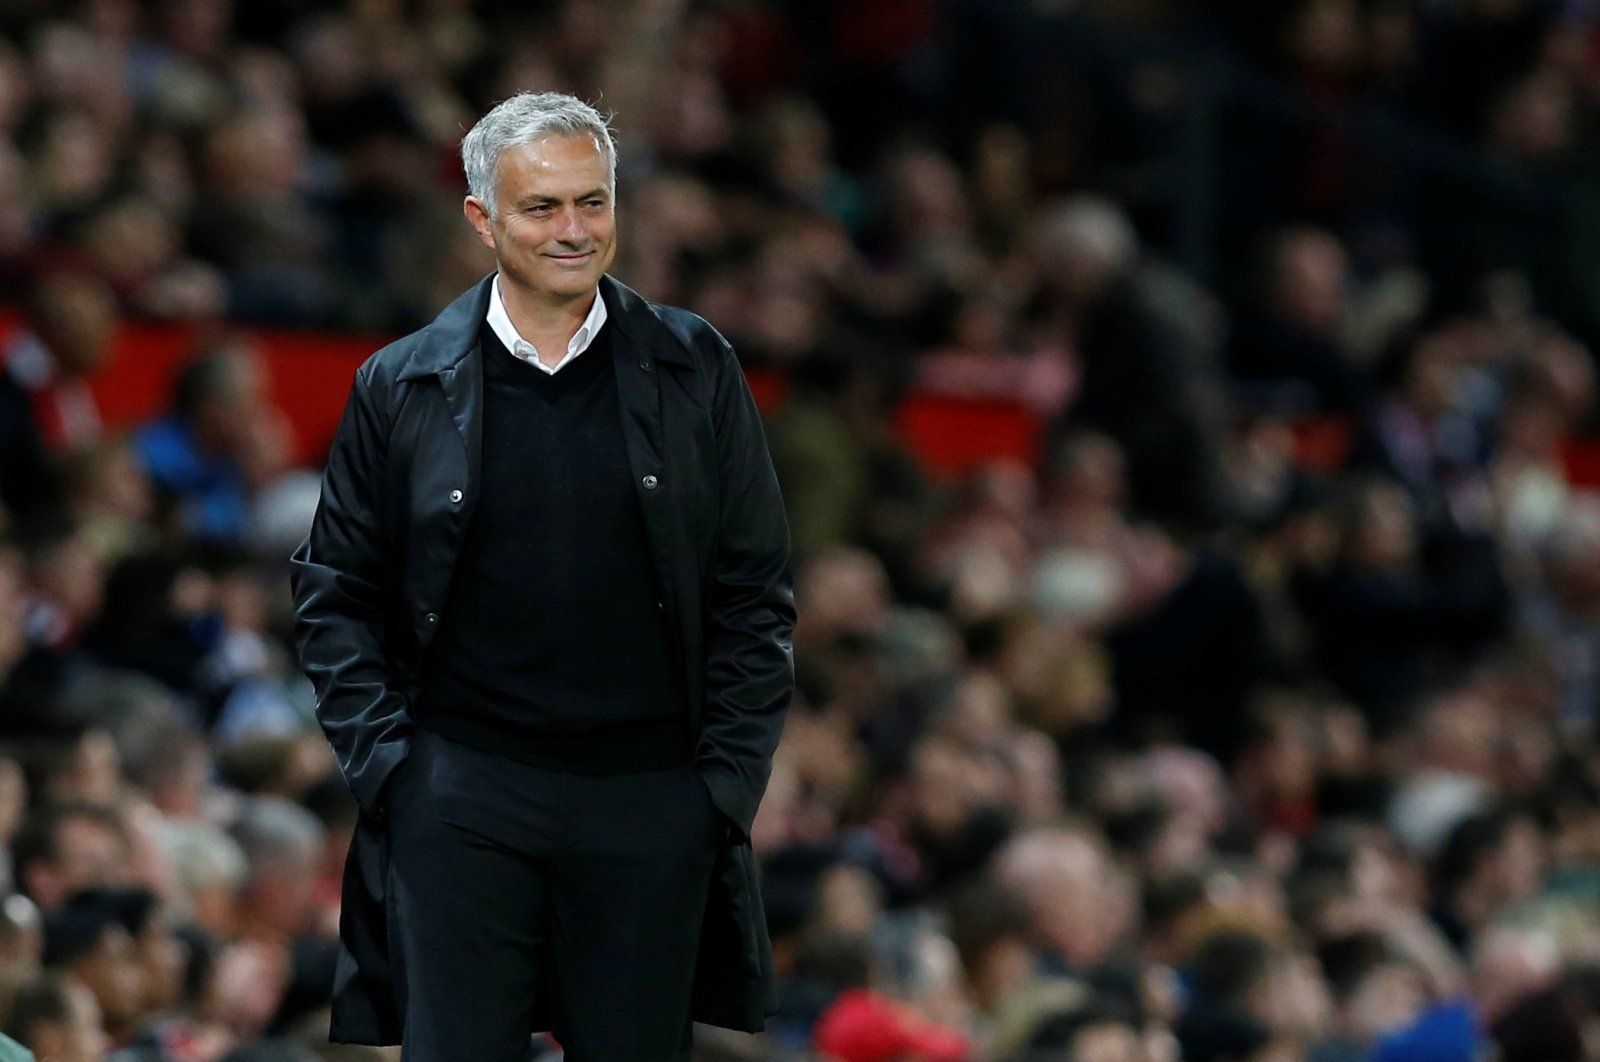 Jose Mourinho to Tottenham: Liverpool fans concerned about facing Spurs